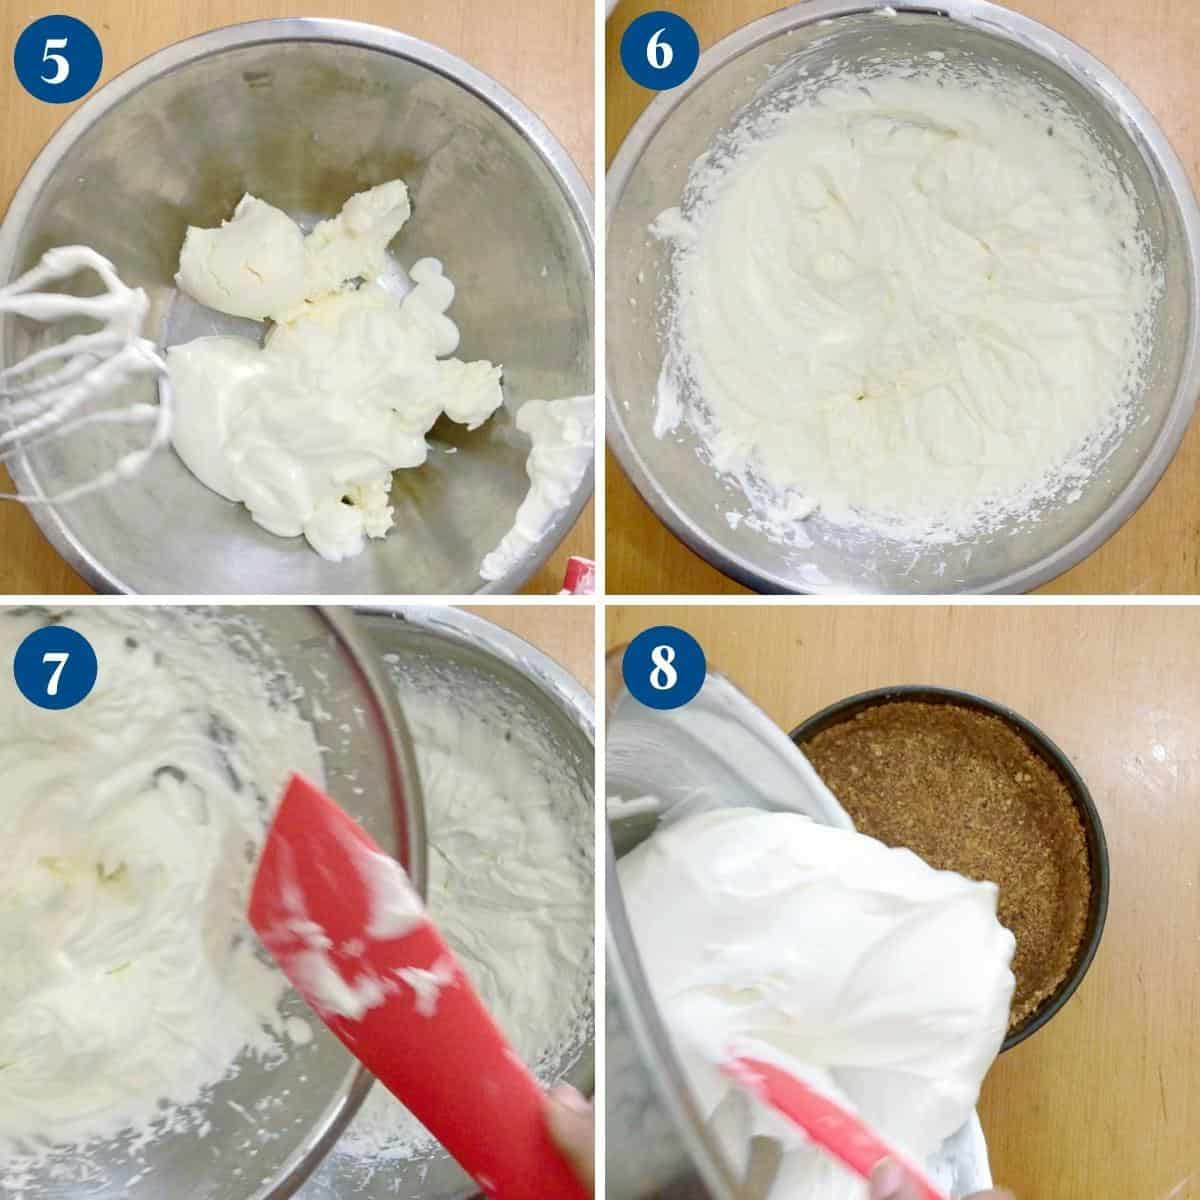 Progress pictures collage making cheesecake batter.